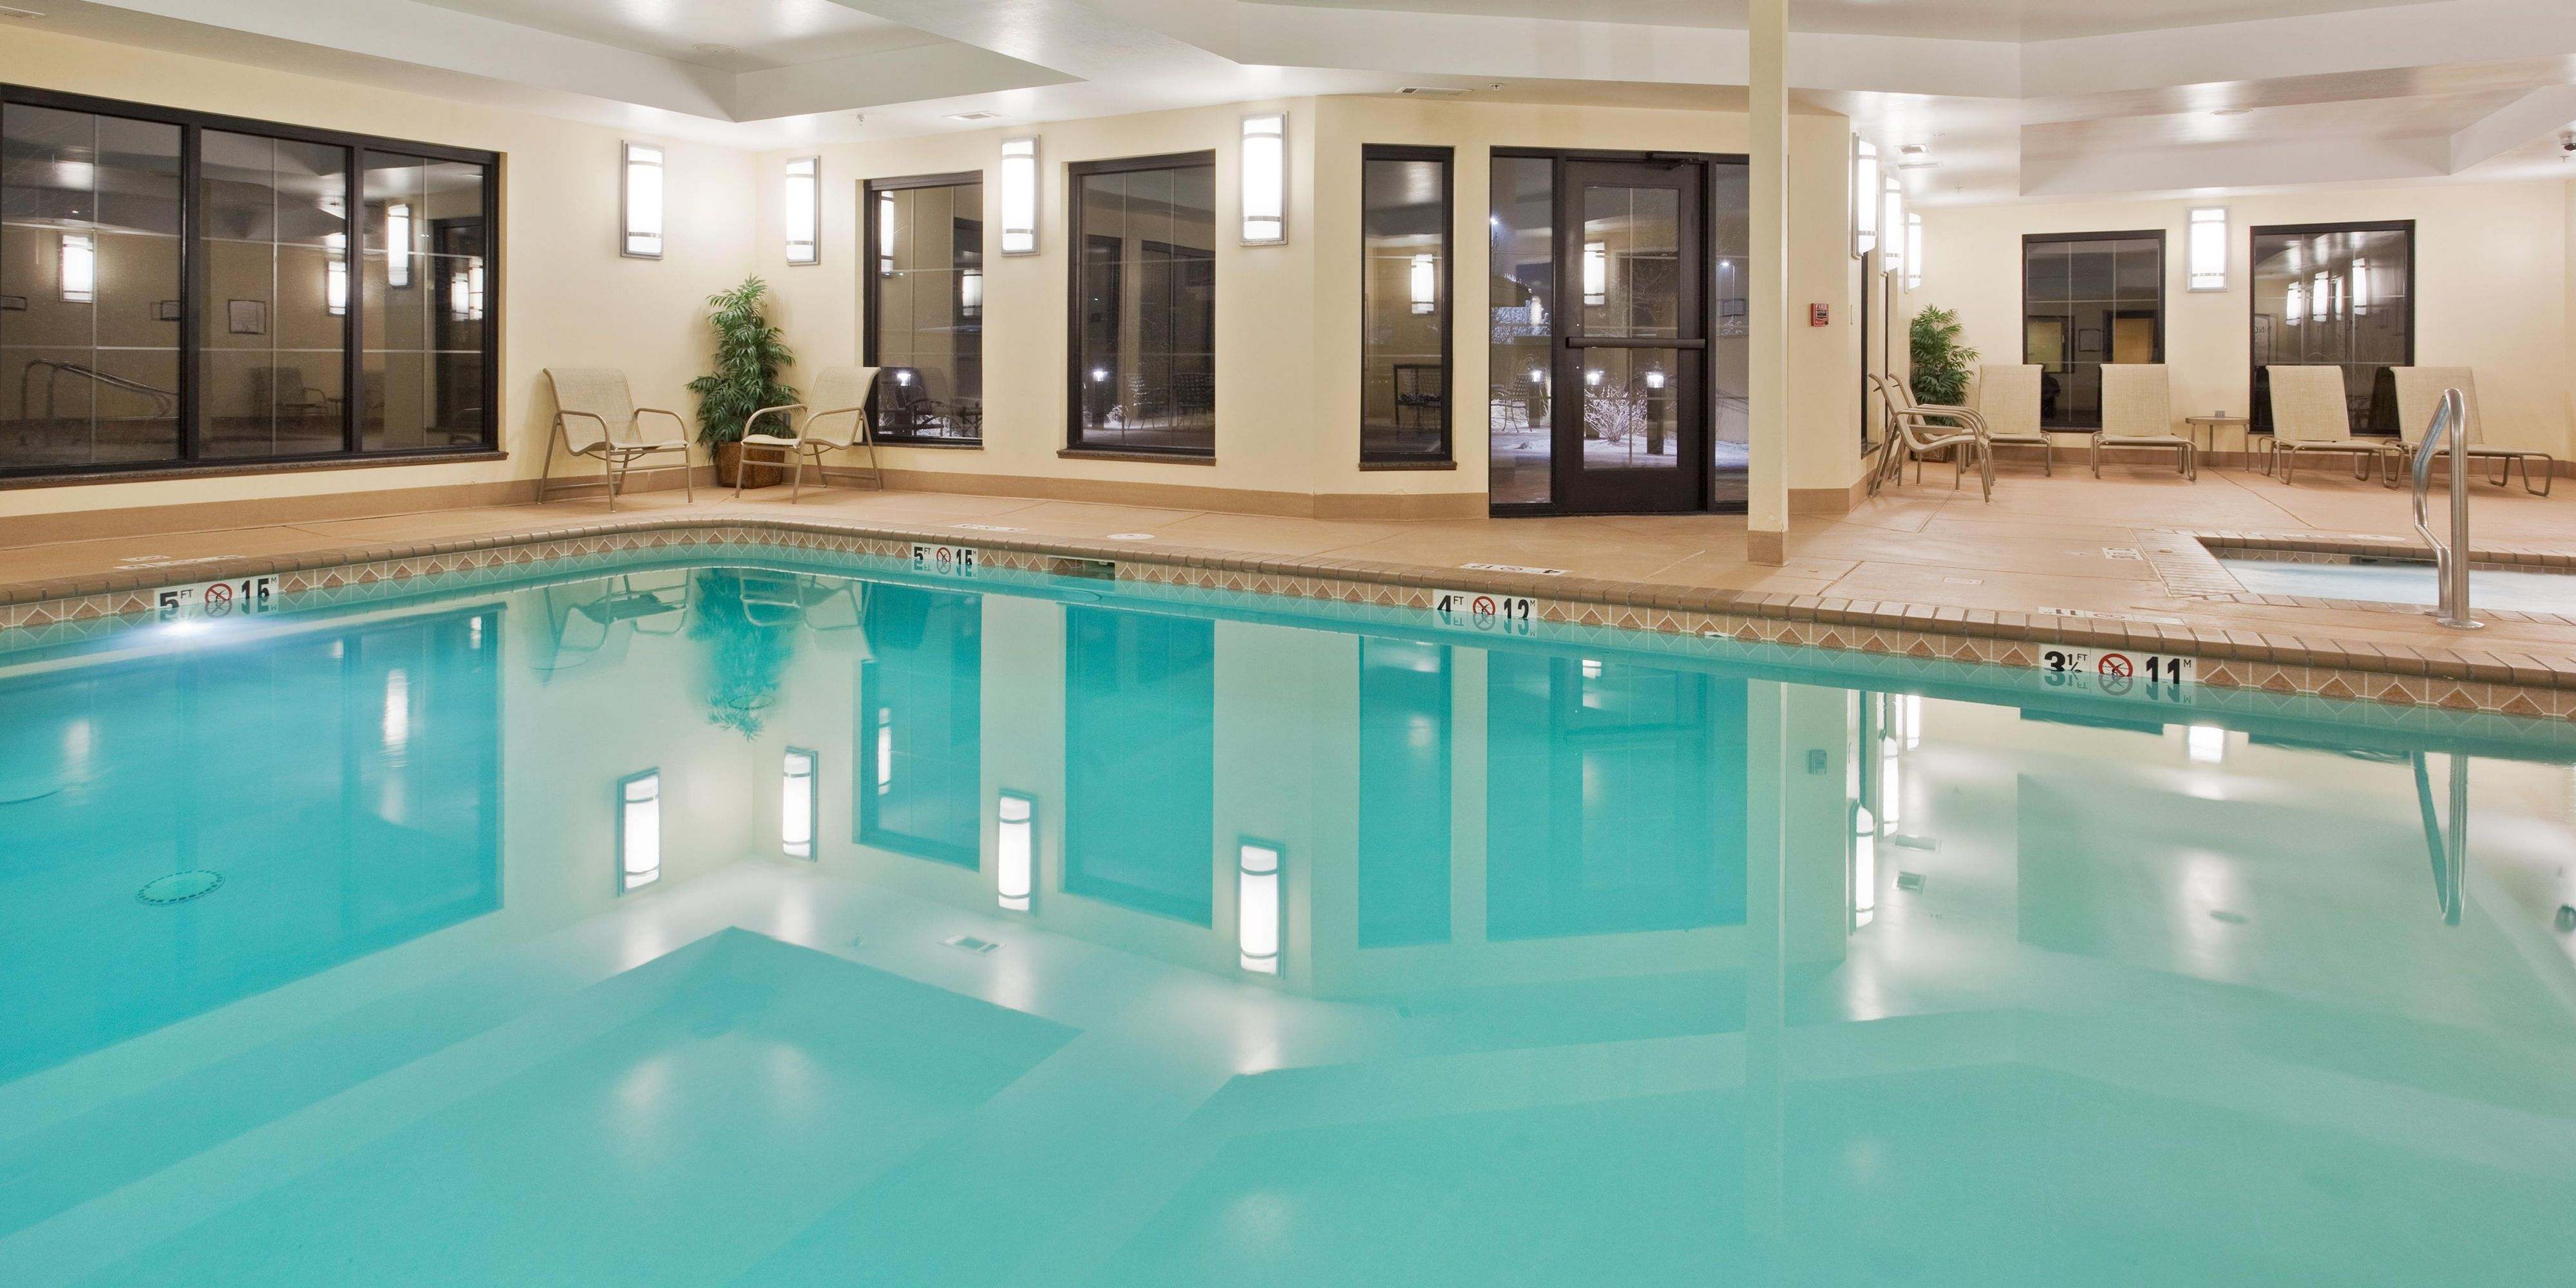 Extended Stay Hotels Near Reno Nv